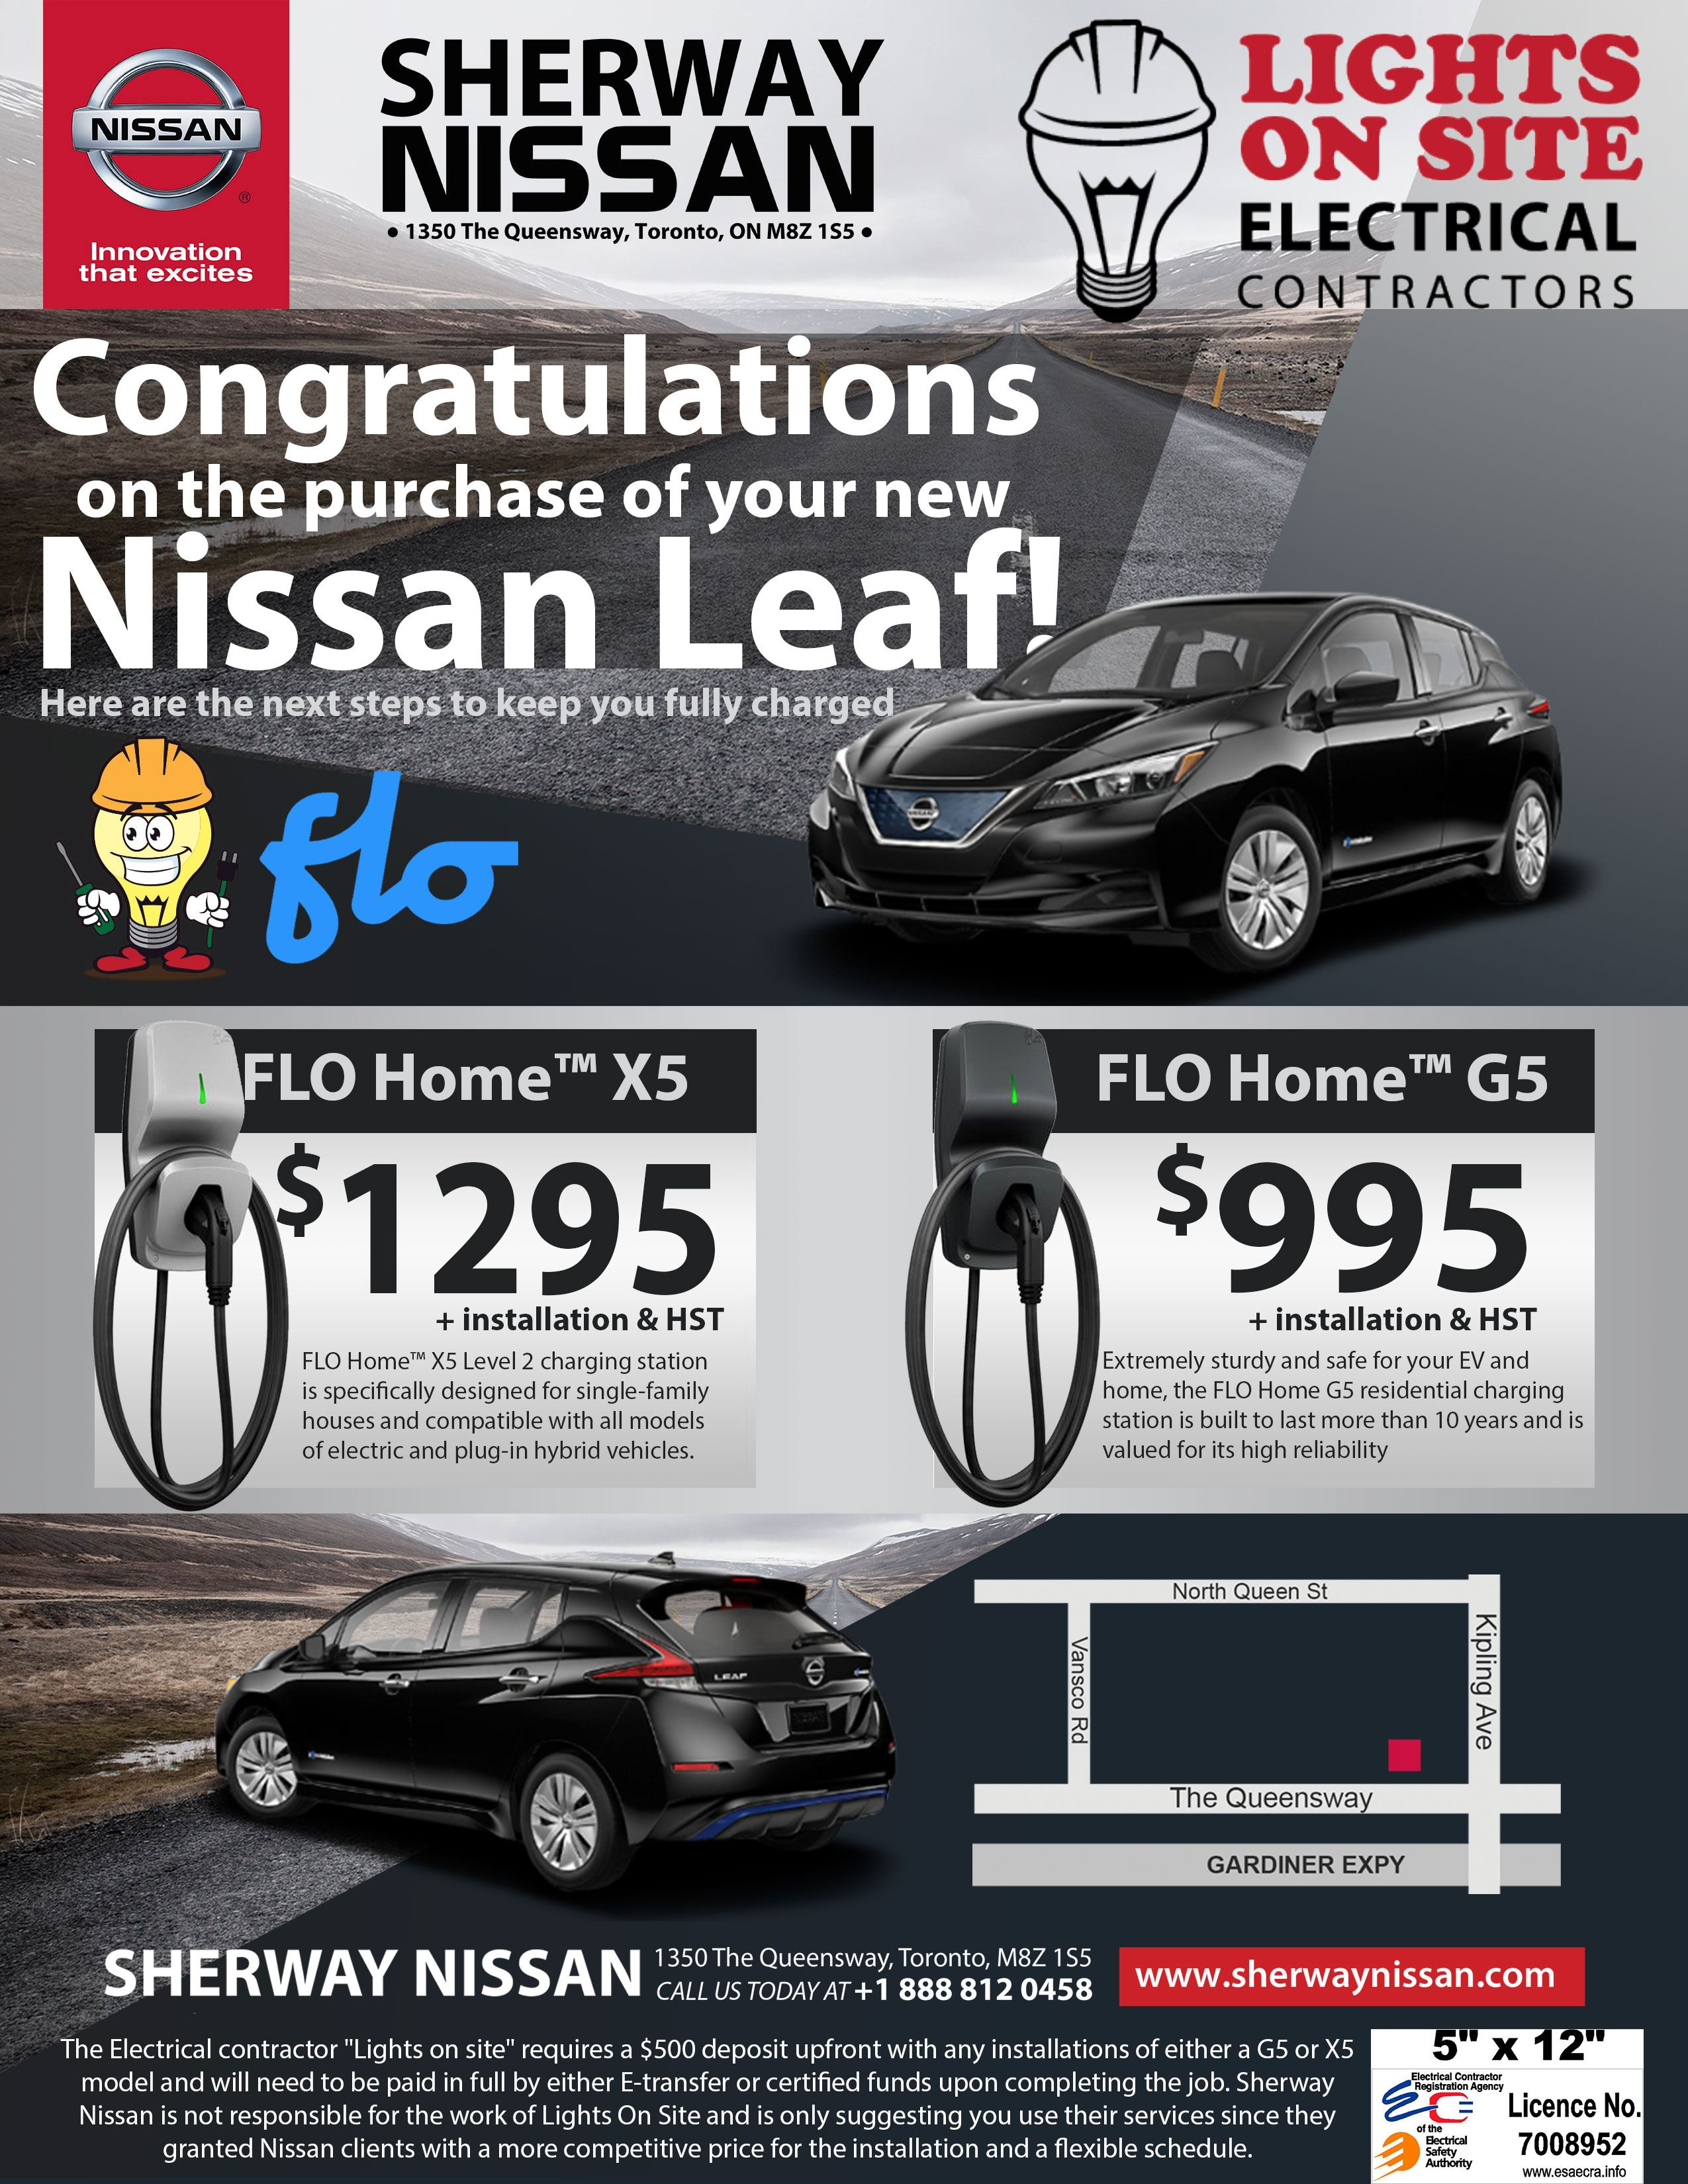 SherwayNissan-LeafCharger-Poster